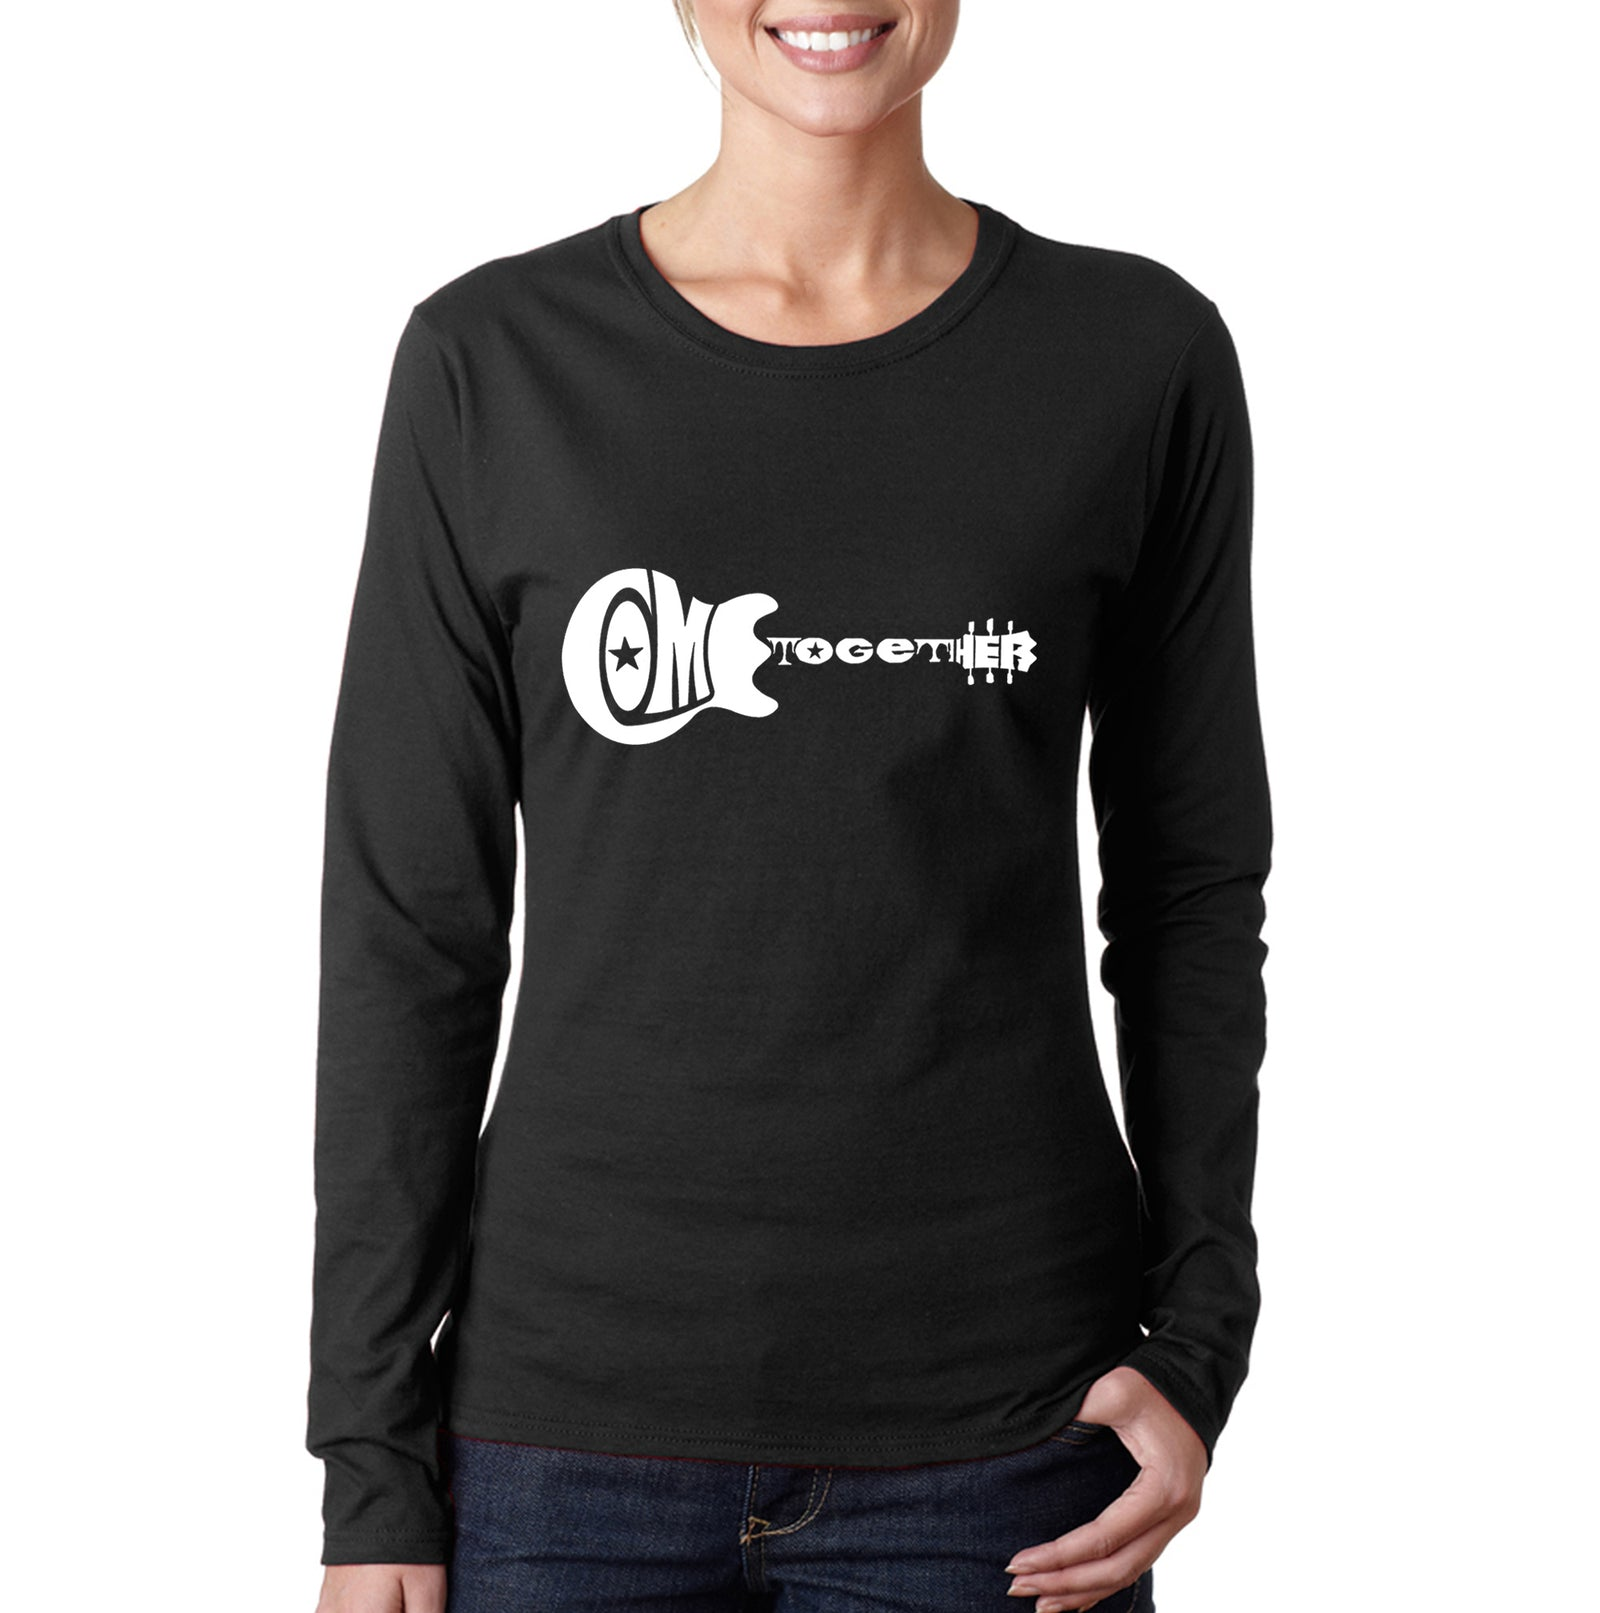 Women's Long Sleeve T-Shirt - COME TOGETHER